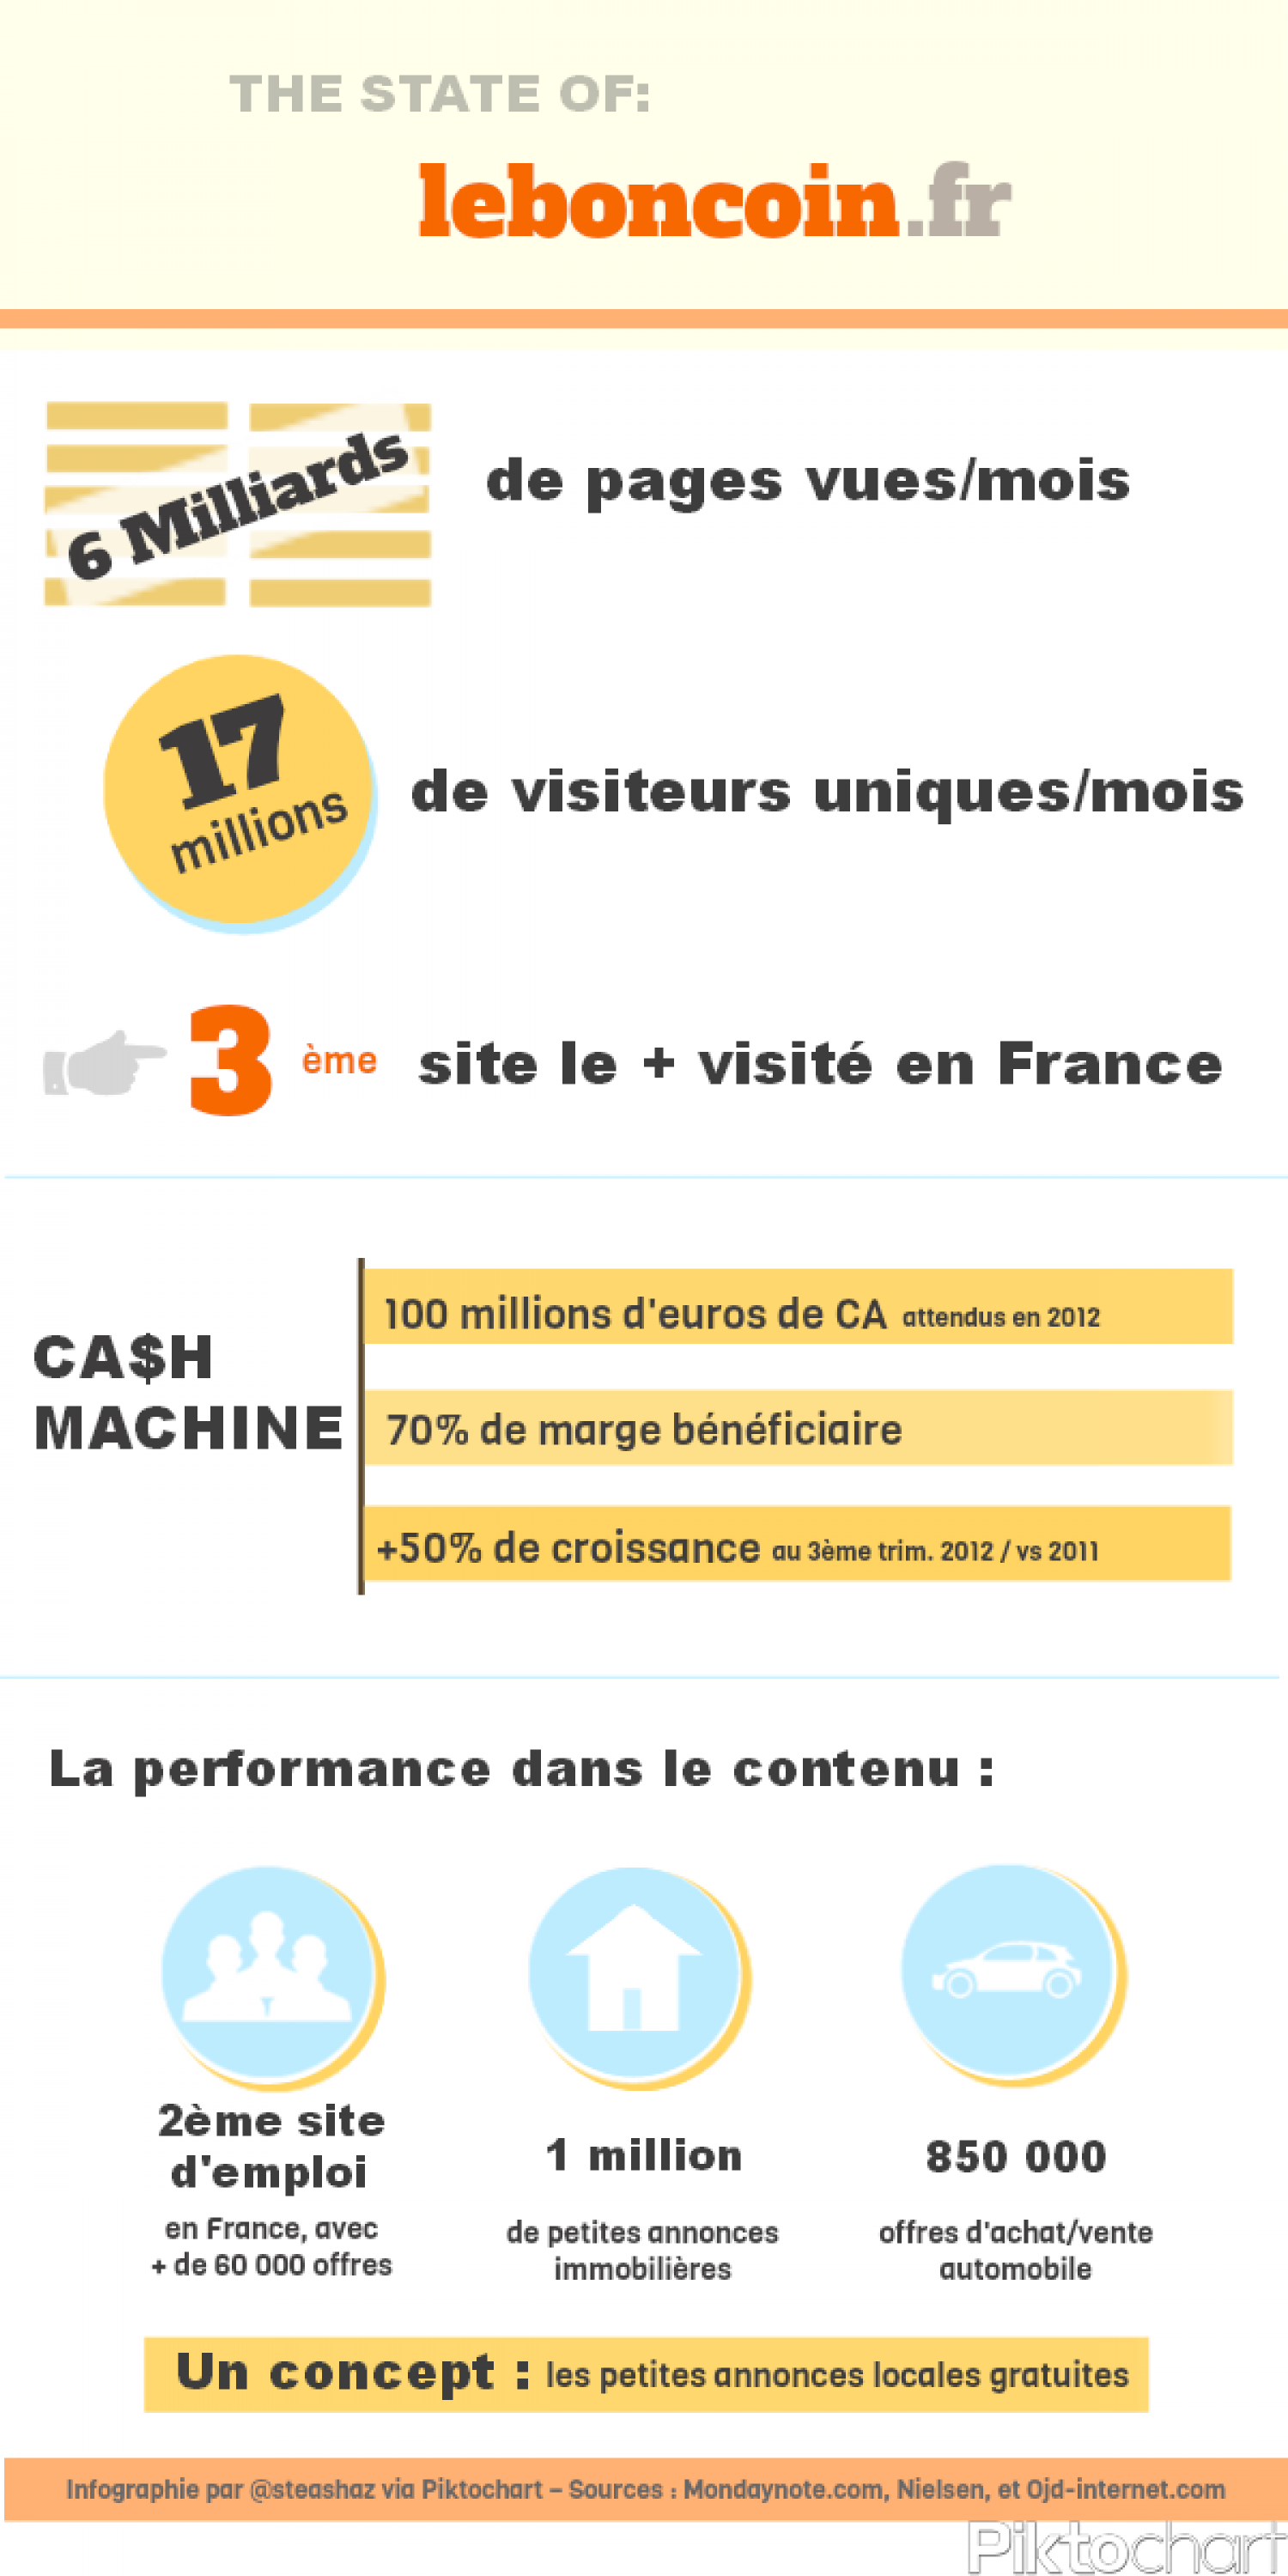 The state of Leboncoin.fr Infographic